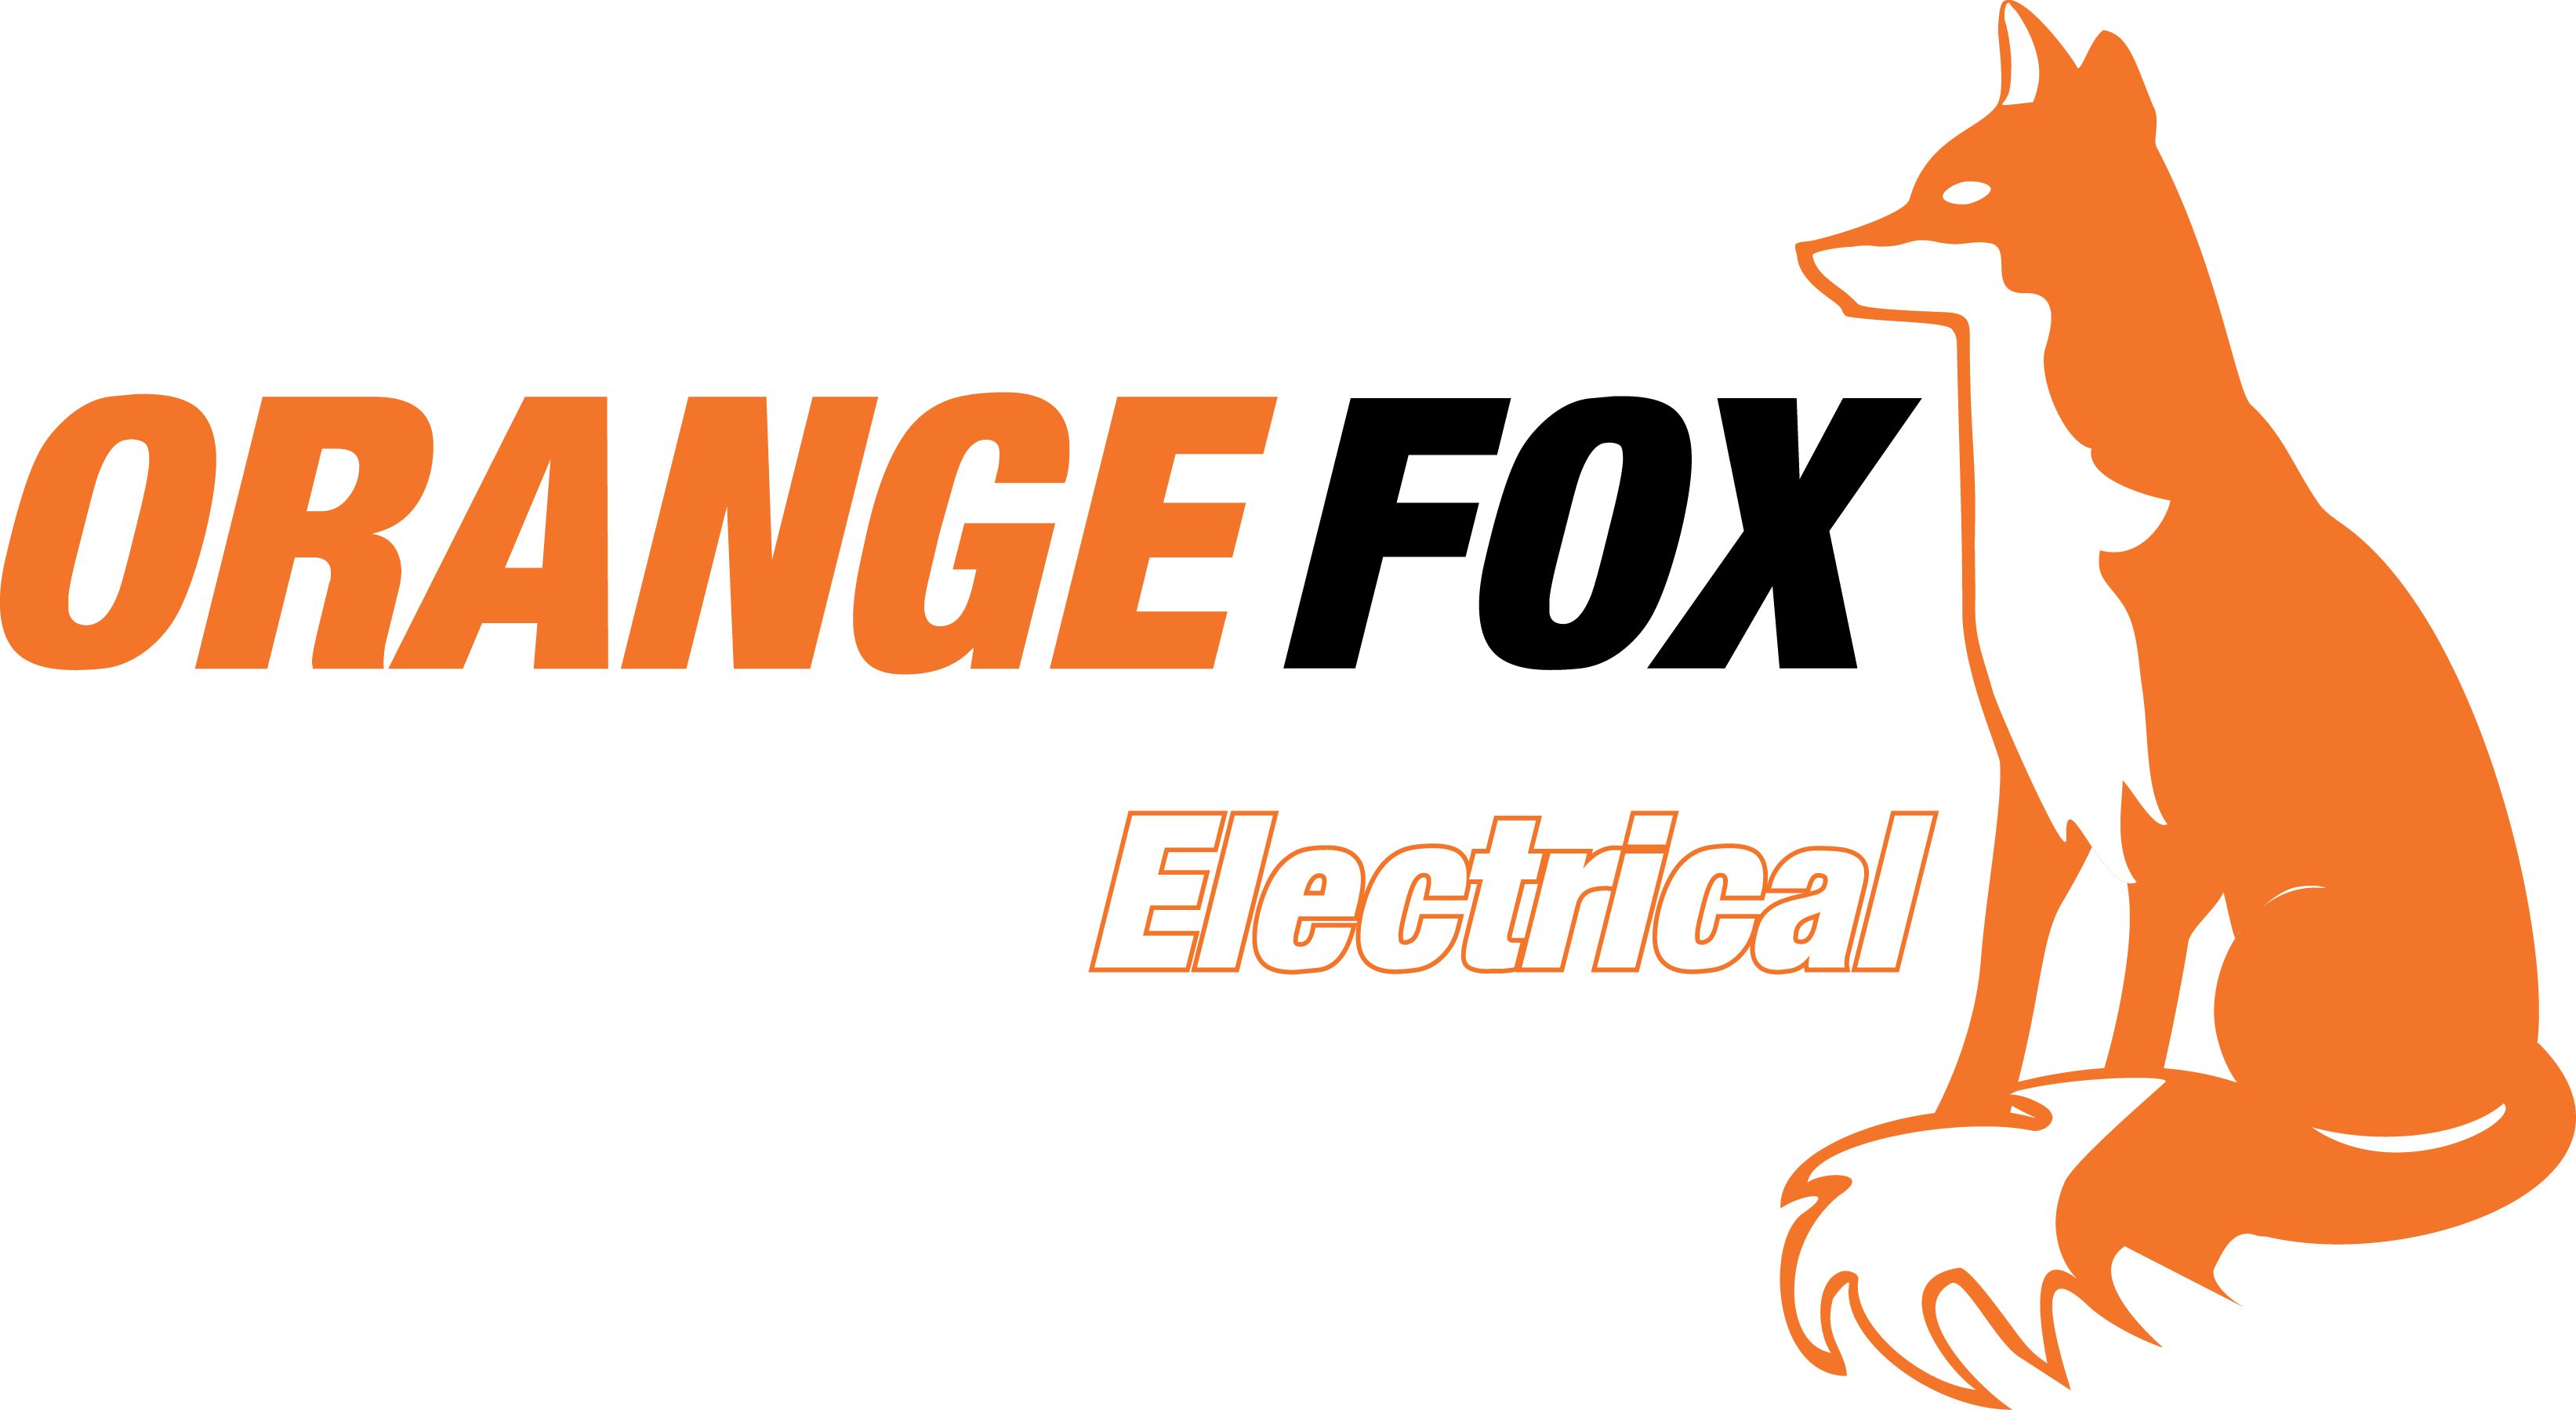 Link to https://orangefoxelectrical.co.uk/